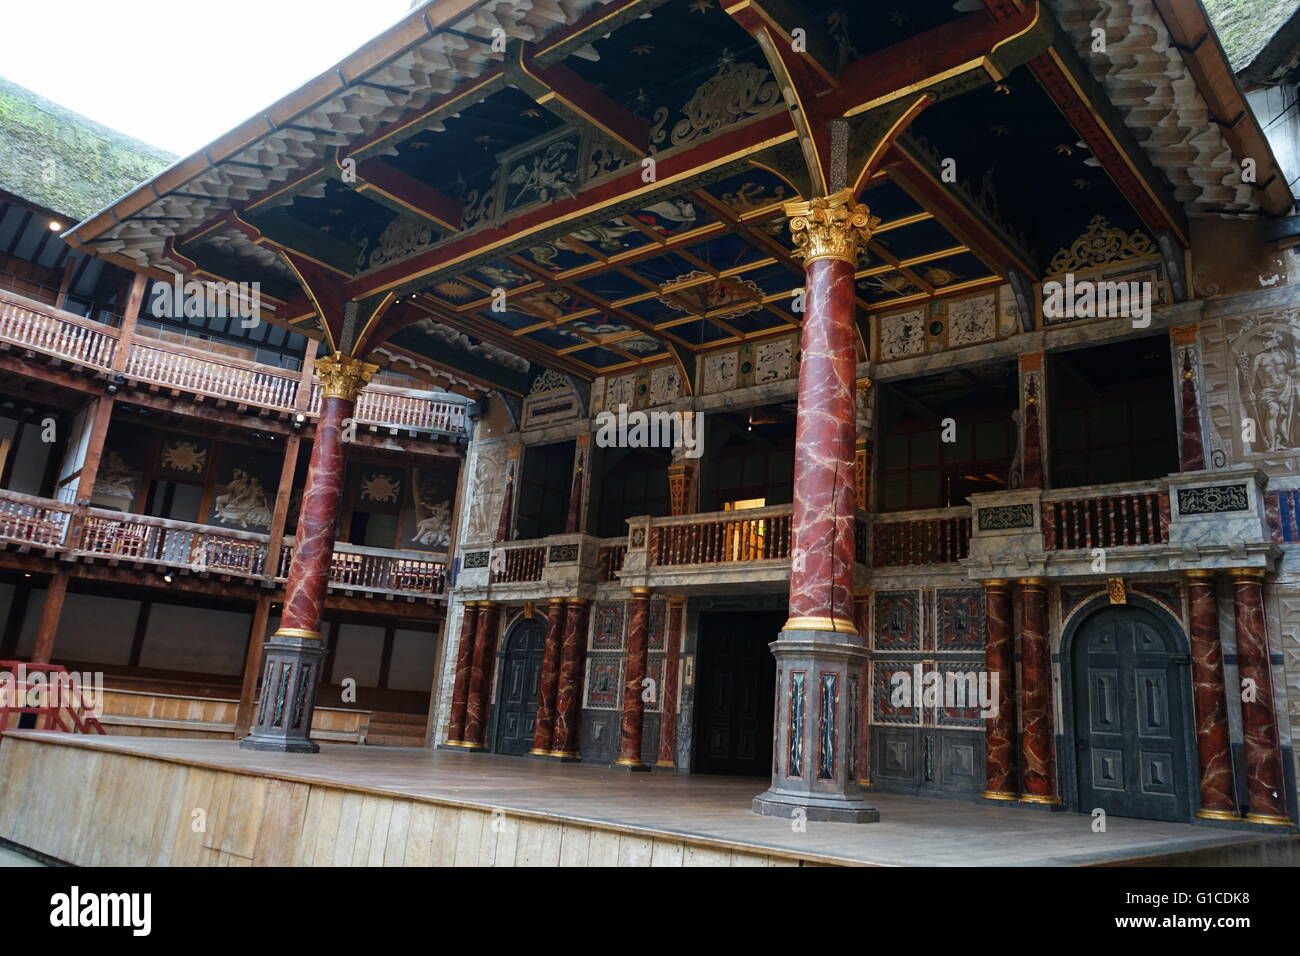 a history of how the shakespeares globe theatre was built The globe theatre (also known as the shakespearean globe theatre) is one of the most recognized theatres in the world it was built in 1599 and was one of four major theatres in london, including .